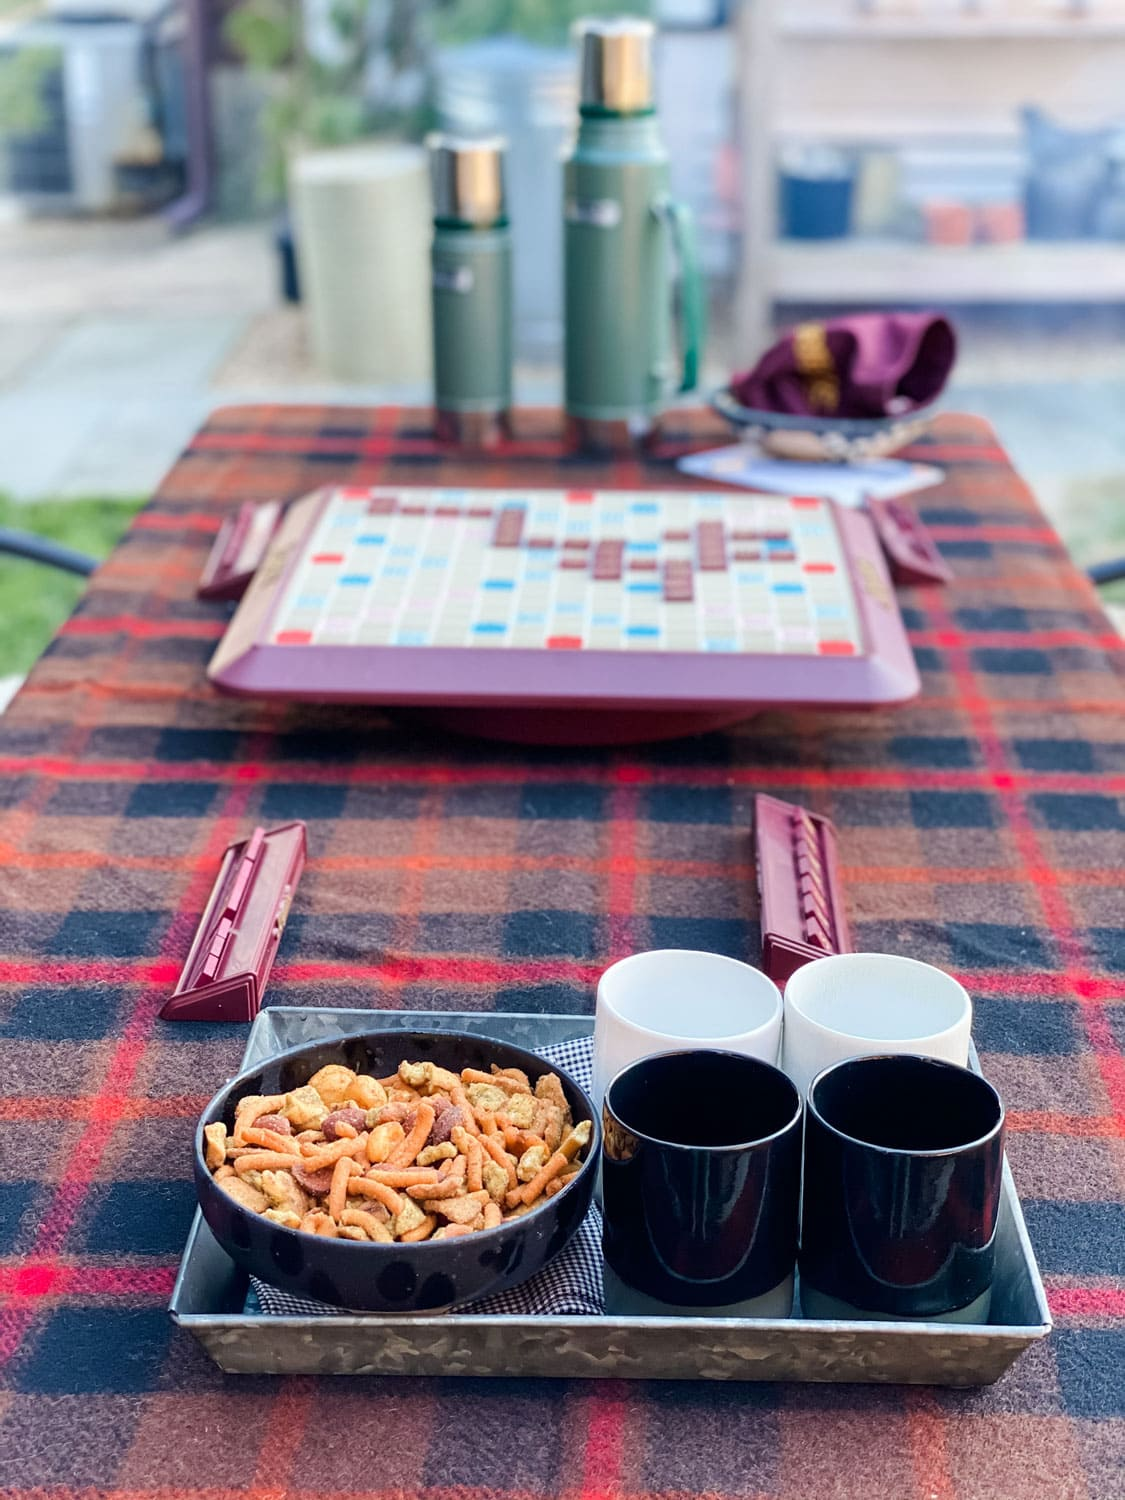 Stanley Thermos and scrabble piece bag on Pendleton blanket, black and white cups and bowl of snack mix